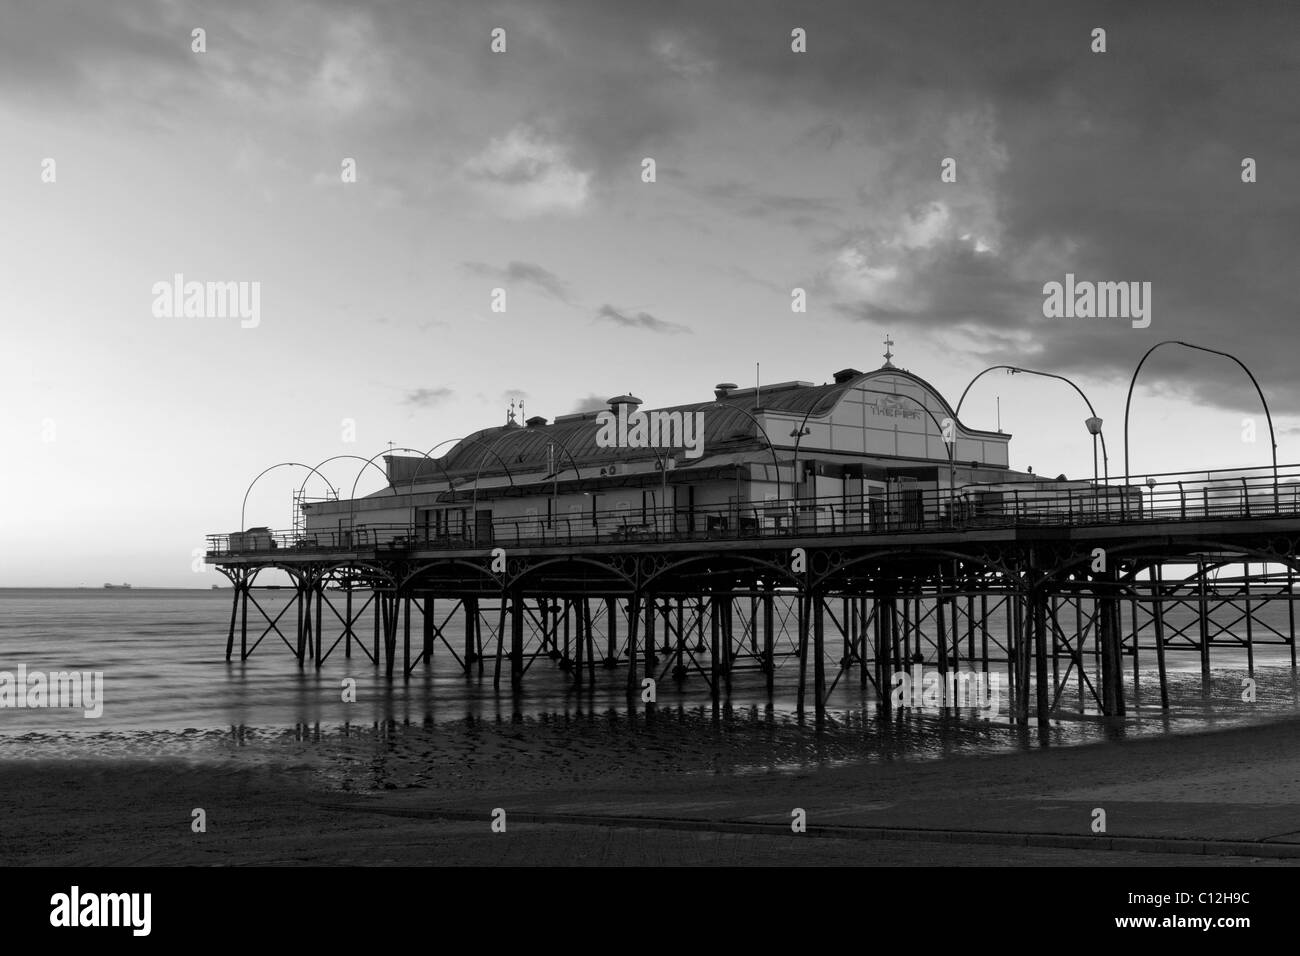 Cleethorpes Pier (slow exposure, monochrome), North East Lincolnshire Feb 2011 - Stock Image